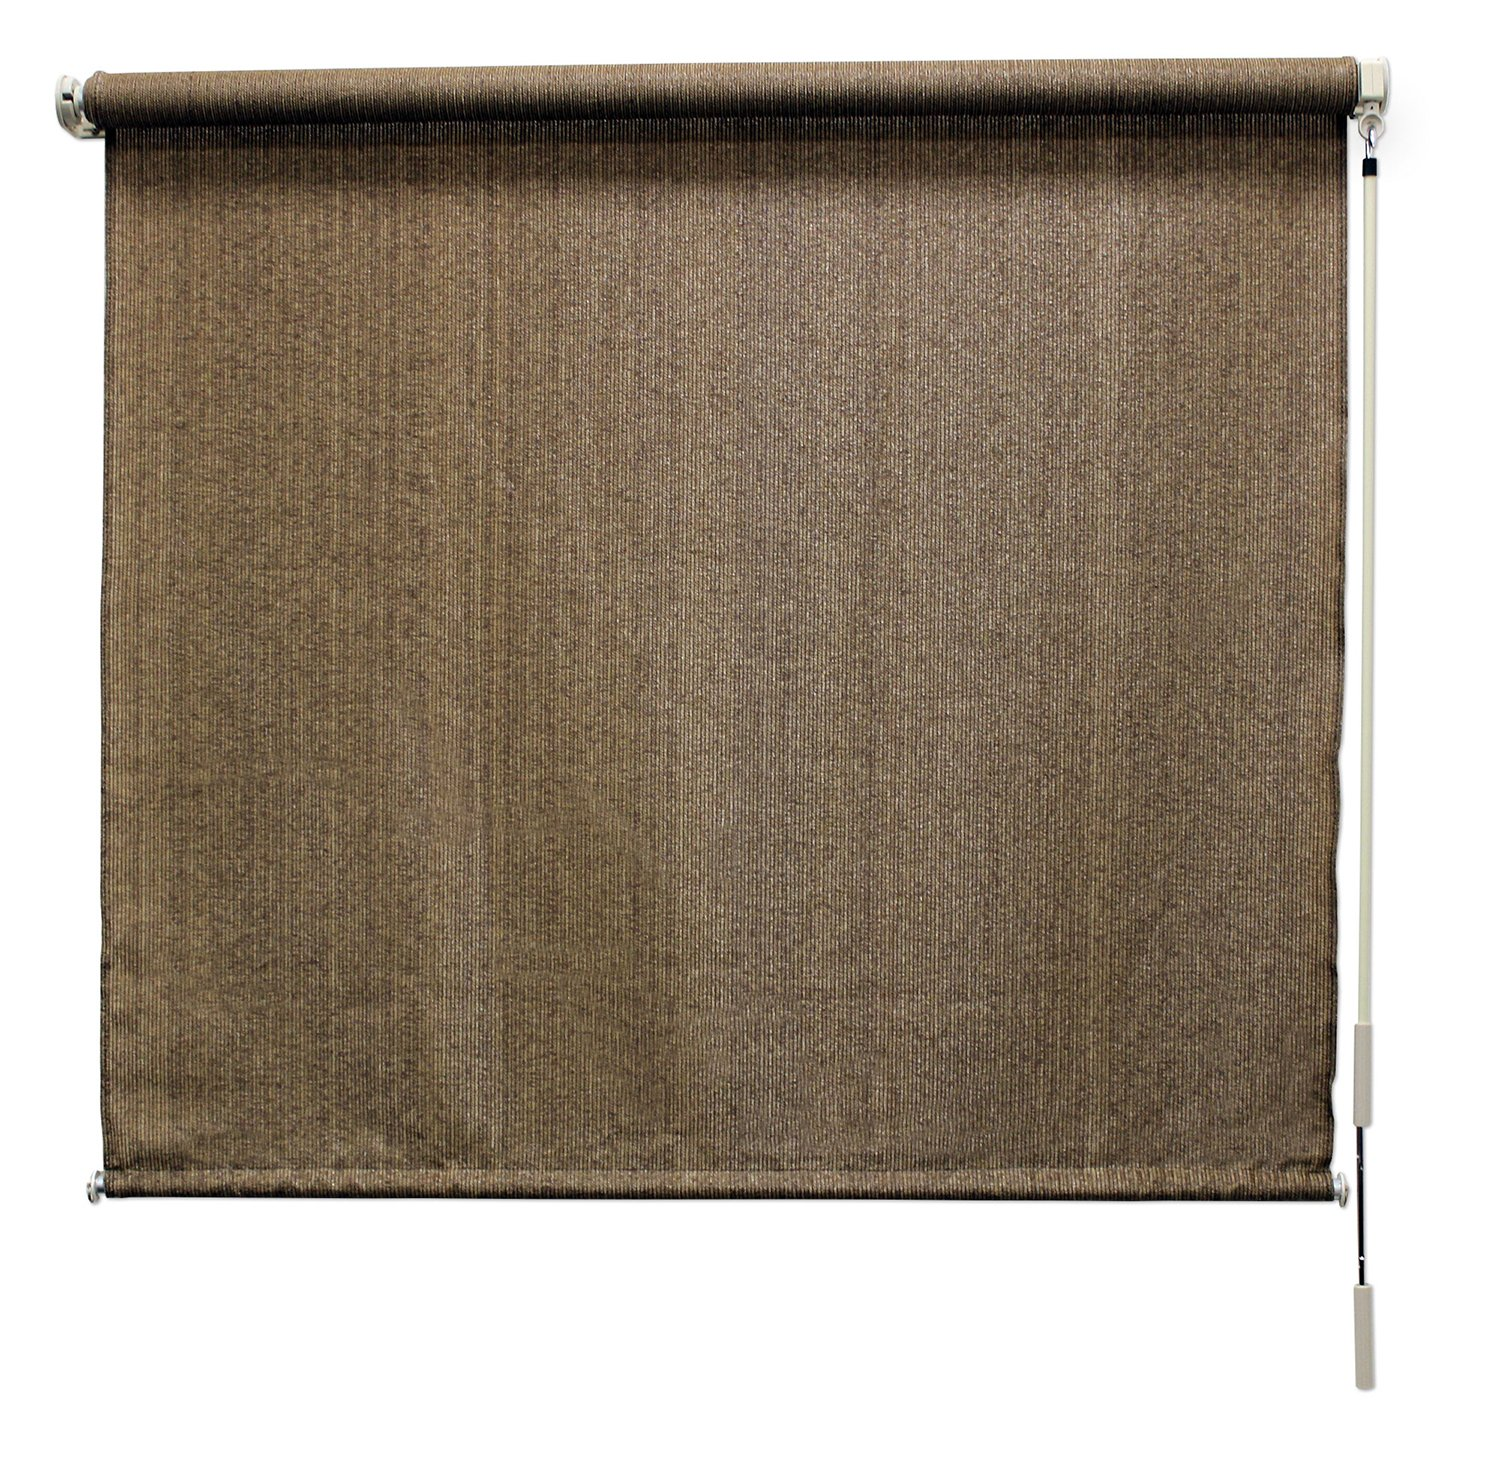 Coolaroo Exterior Roller Shade, 8 by 8-Feet, Walnut product image